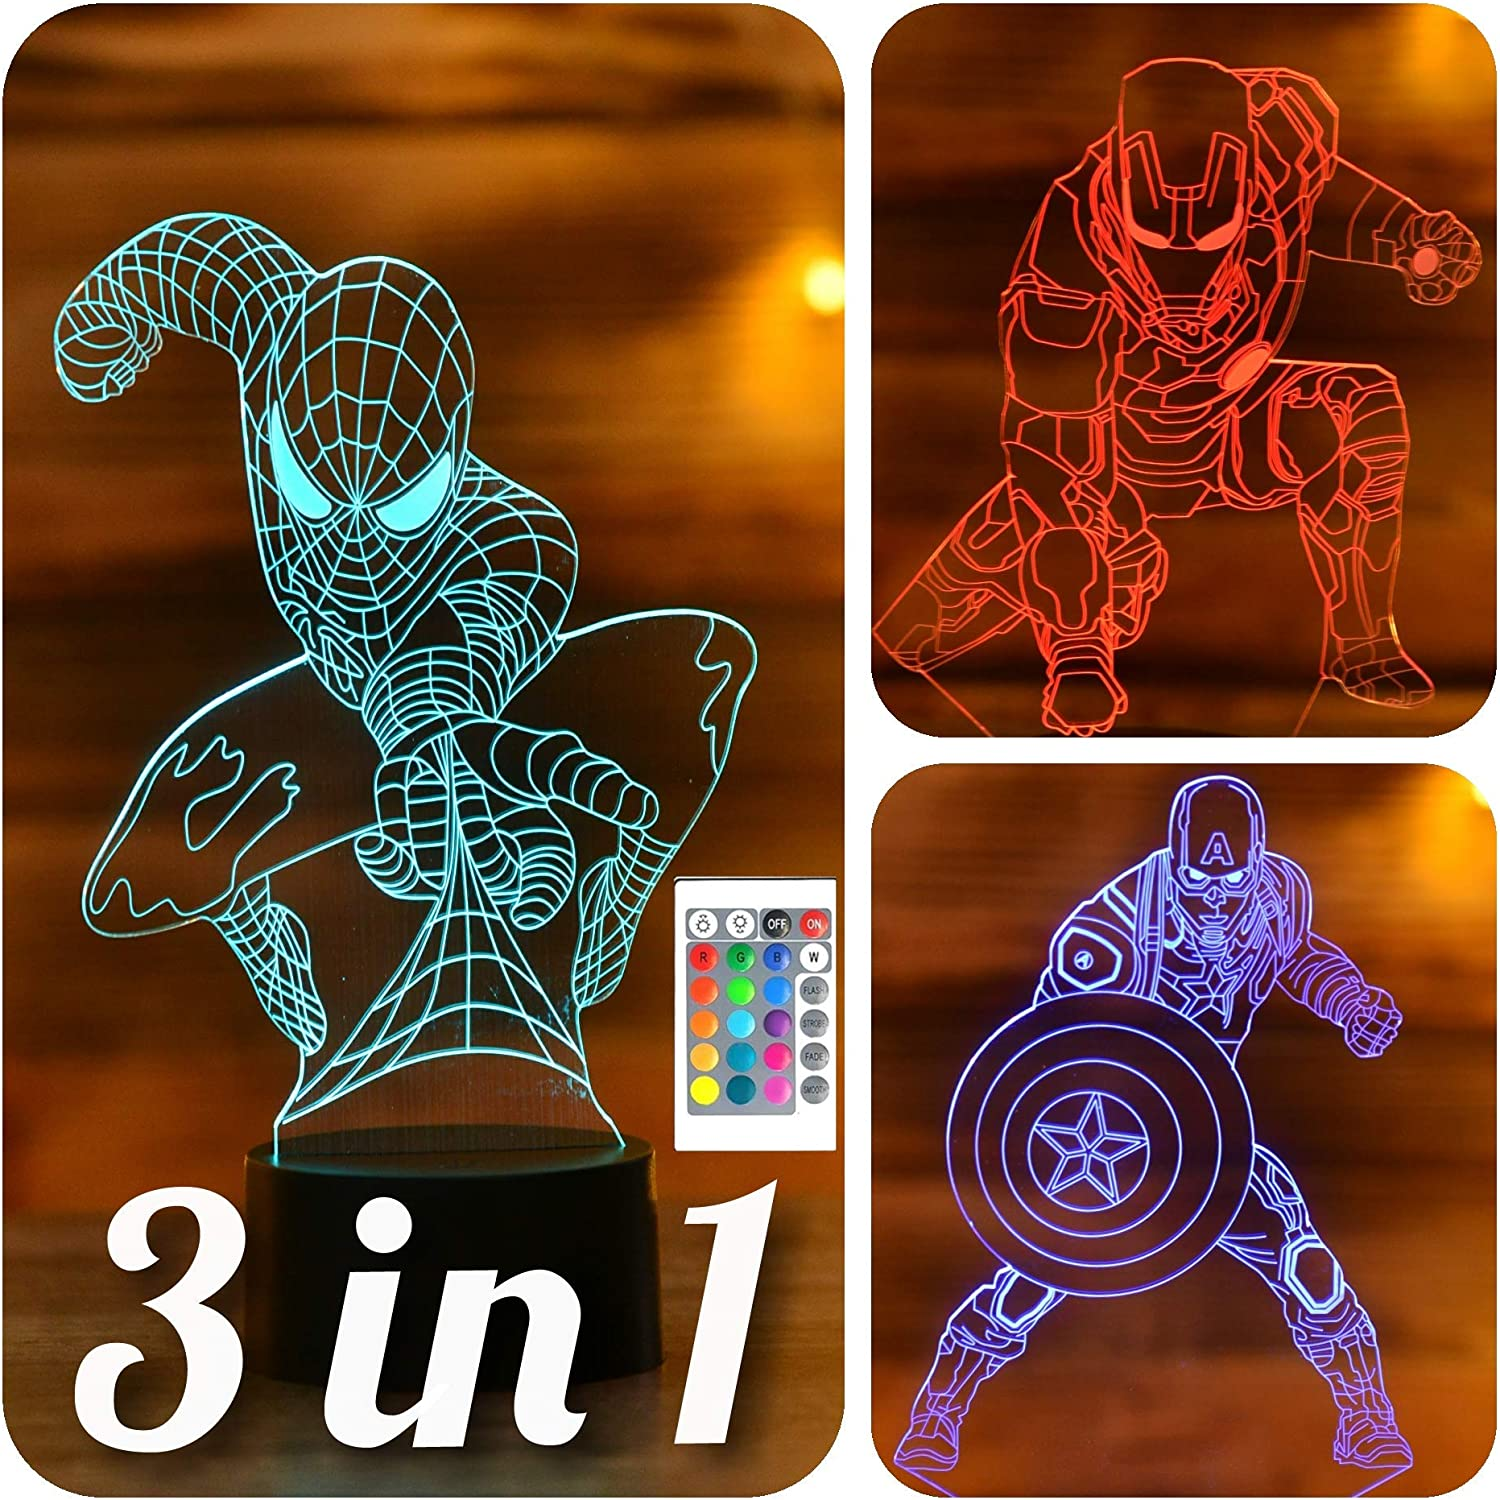 Amazon Com Serkyhome 3in1 3d Illusion Night Light For Kids 7 Colors With Remote Led Table Lamp Spiderman Ironman Captain America Avengers 3in1 Home Kitchen